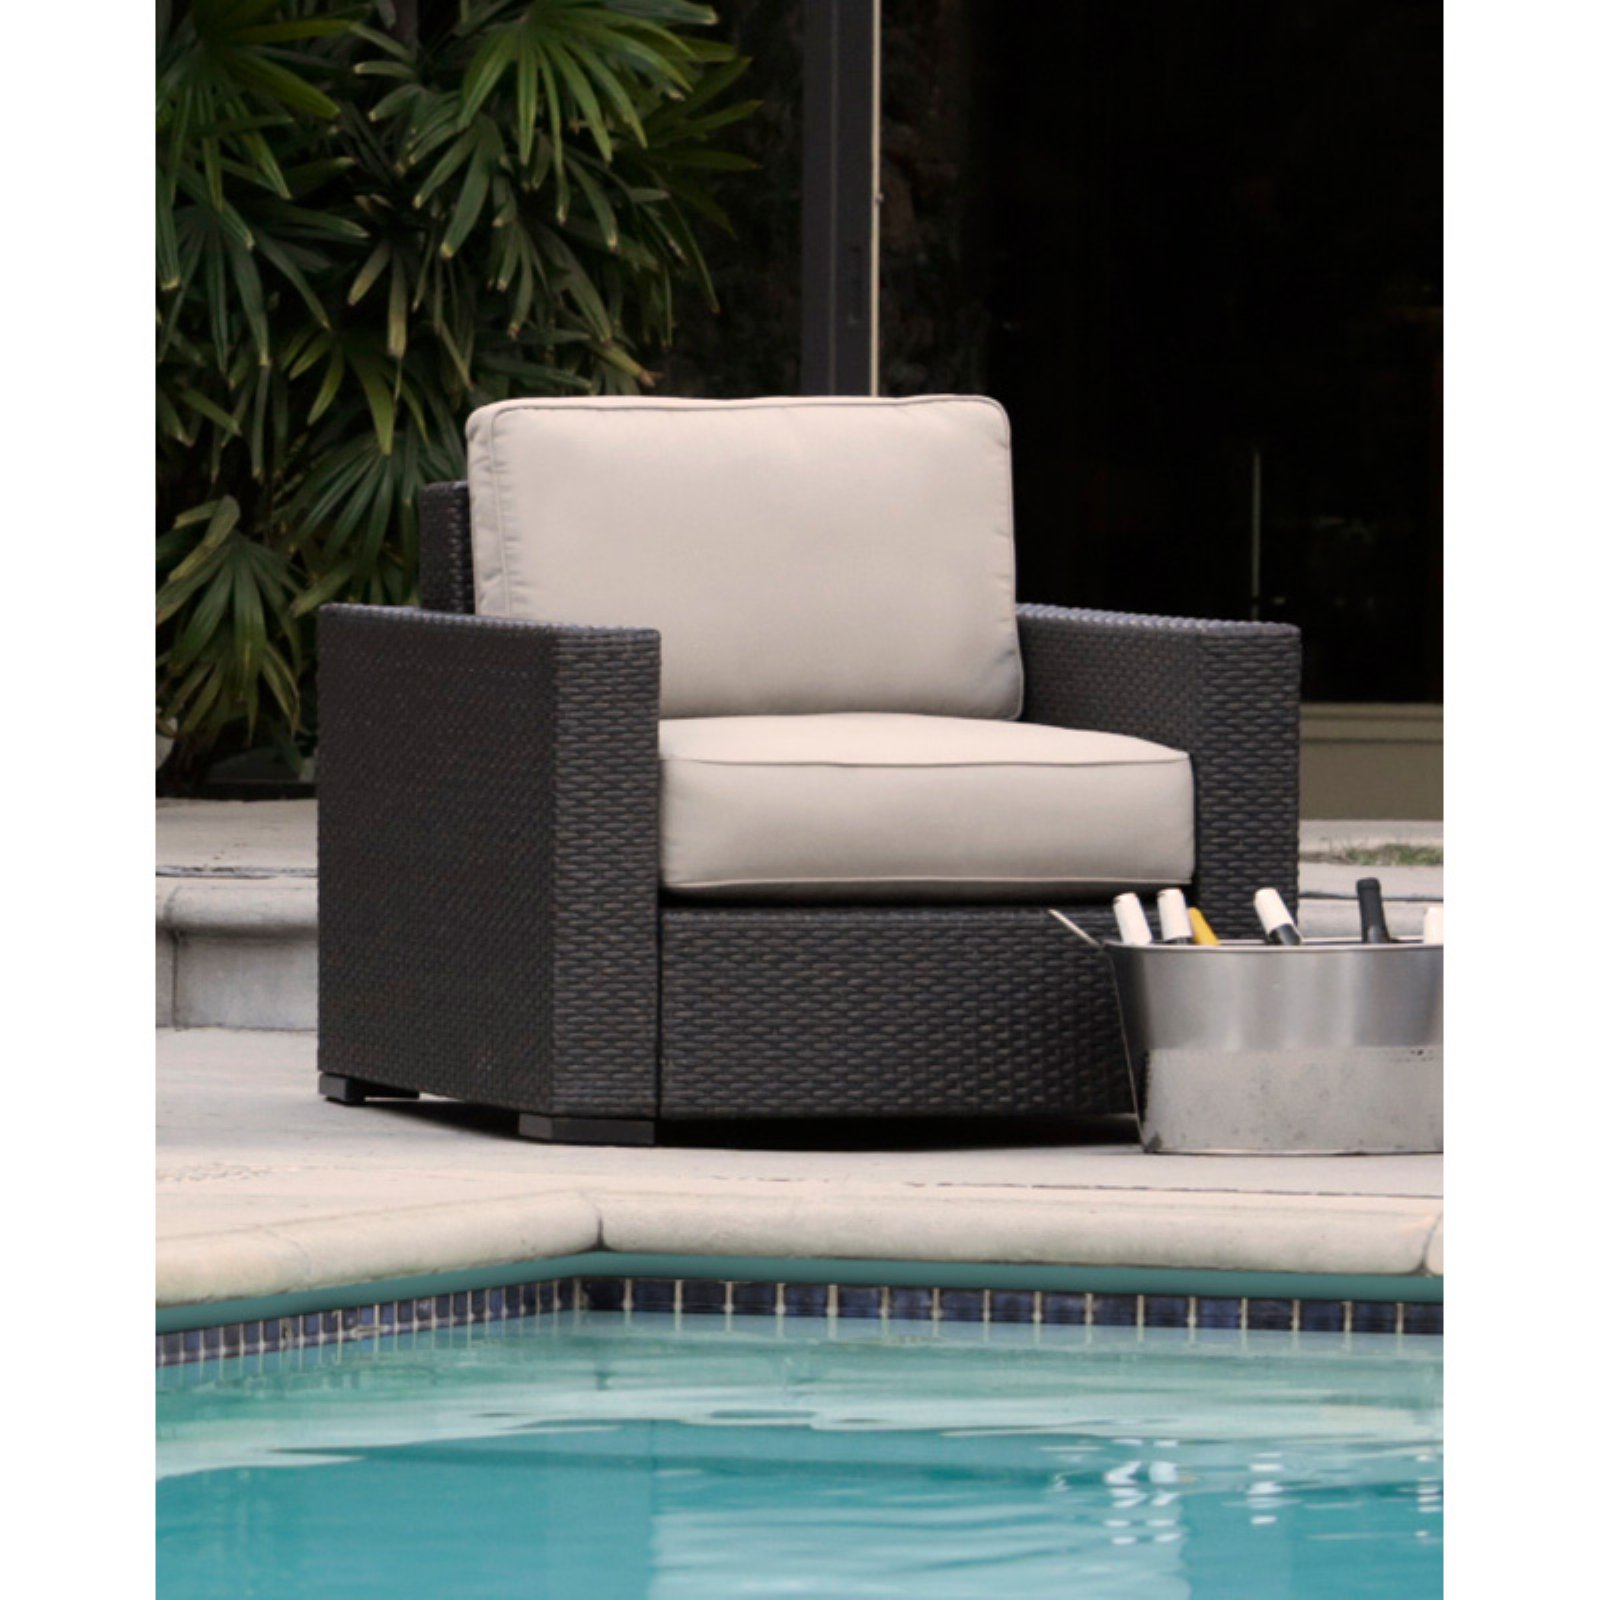 Serta Laguna Outdoor Arm Chair - Brown Wicker